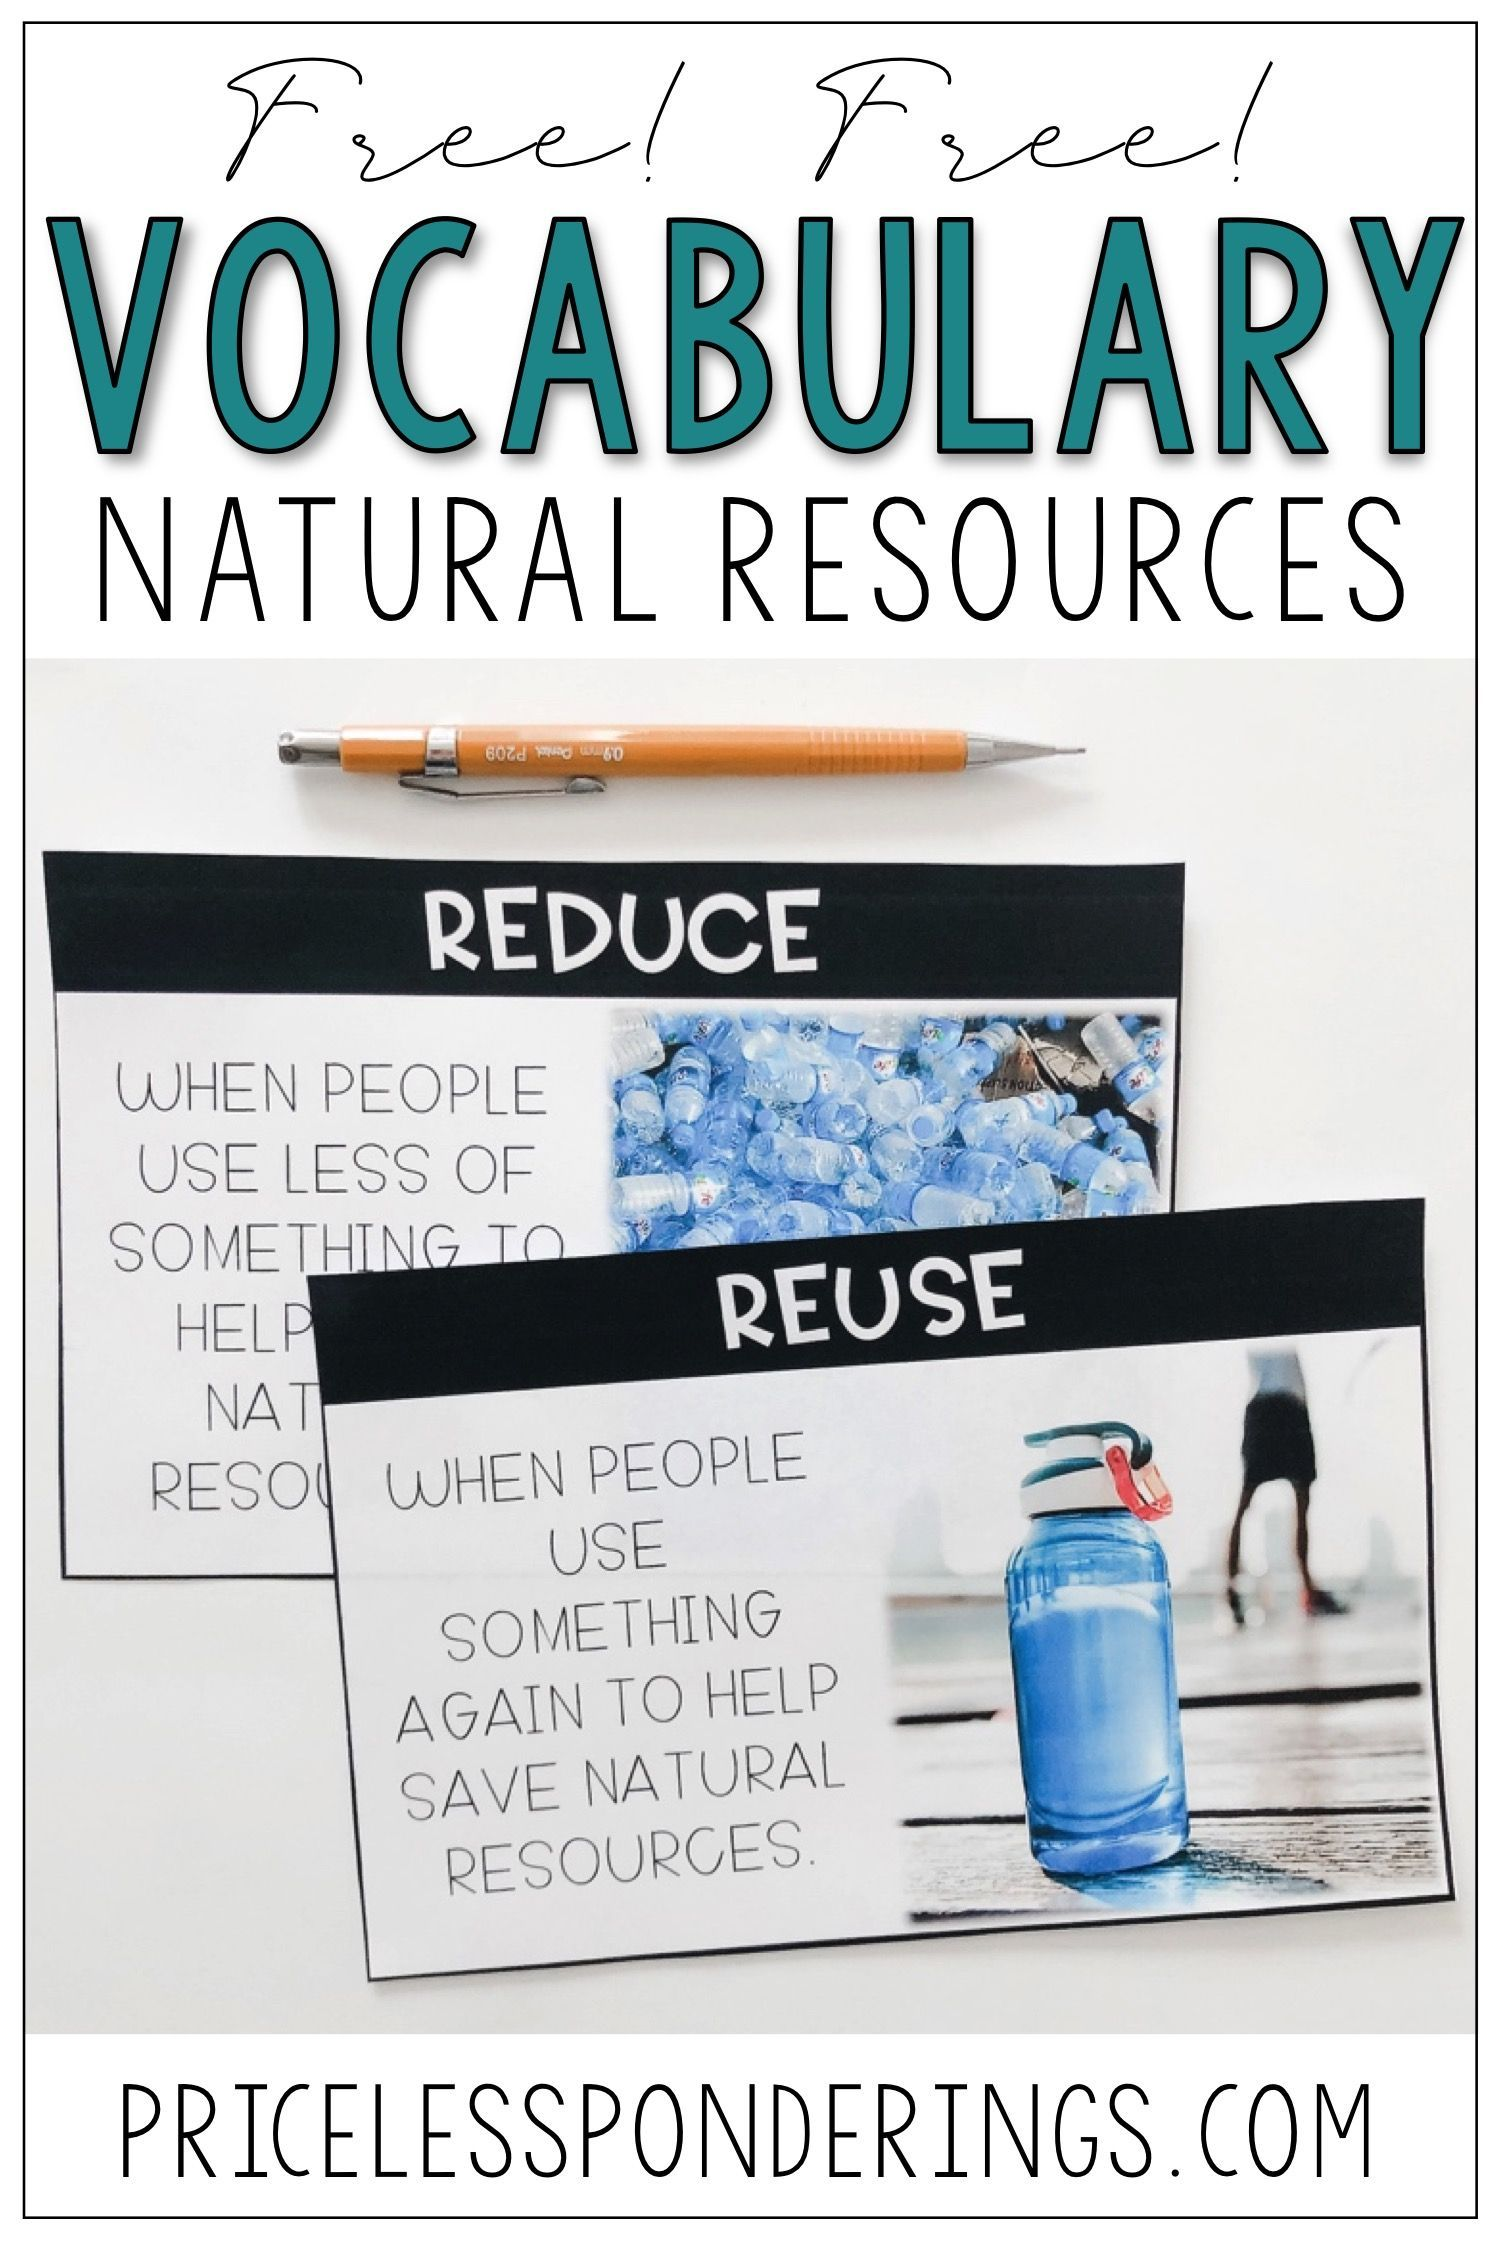 Free Natural Resources Worksheets And Vocabulary Cards To